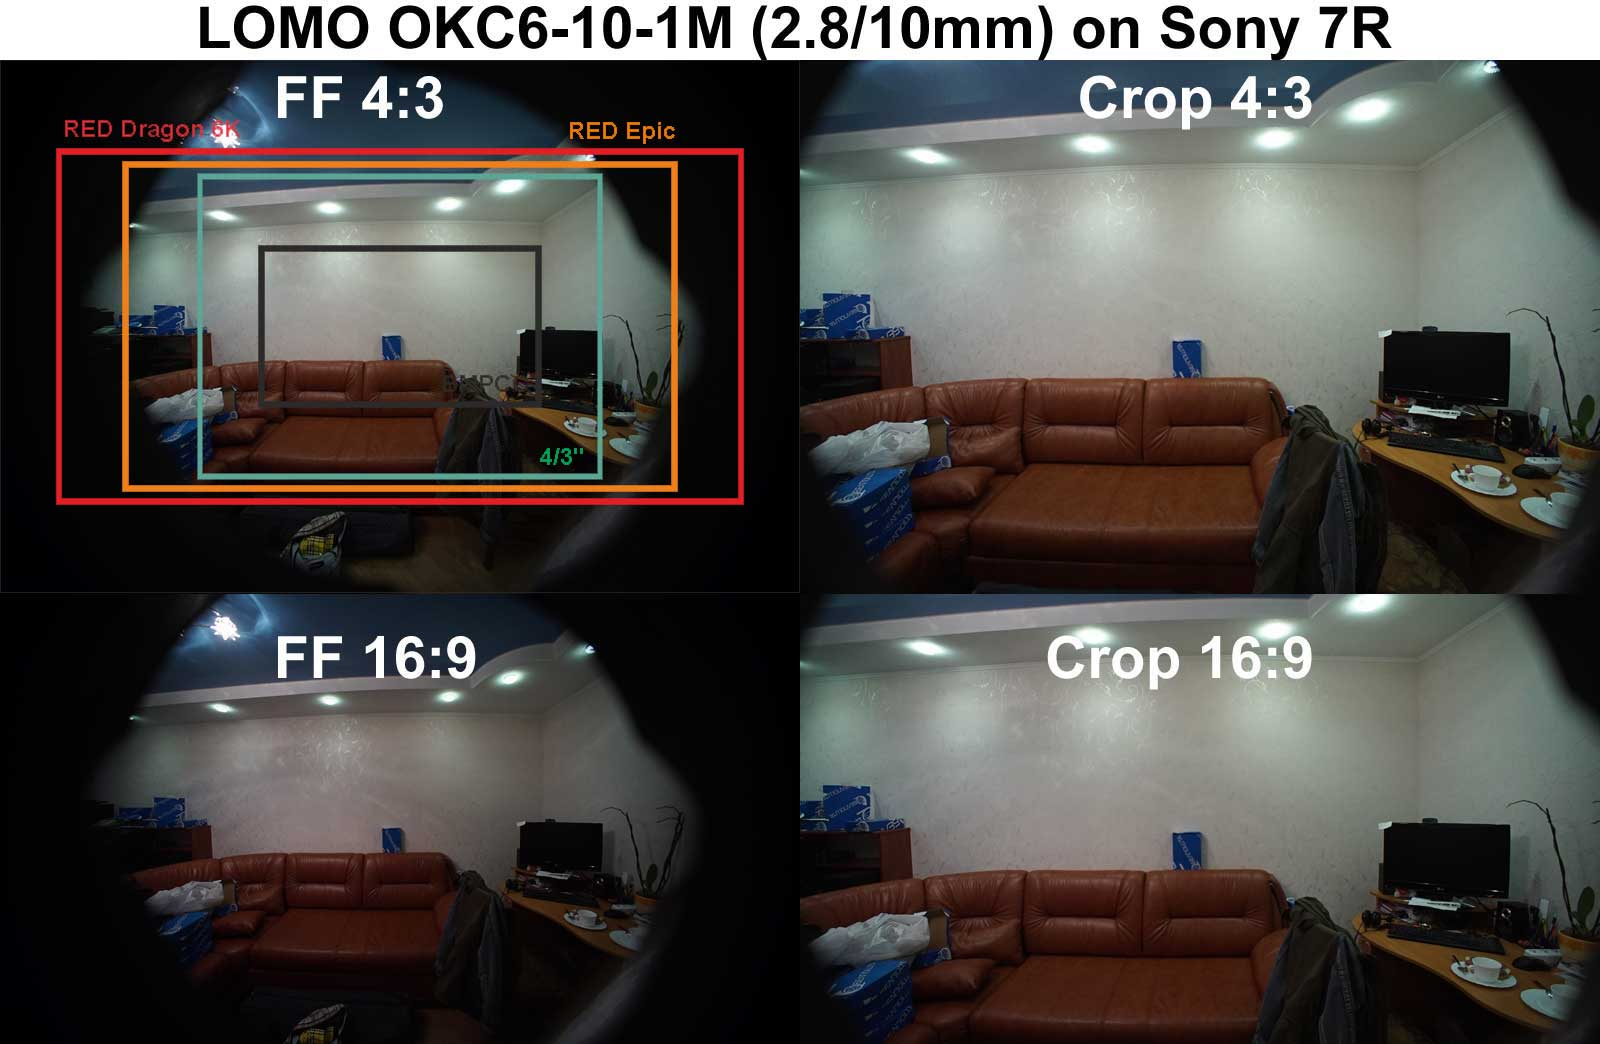 Coverage of LOMO OKC6-10-1M lens on Sony 7R camera